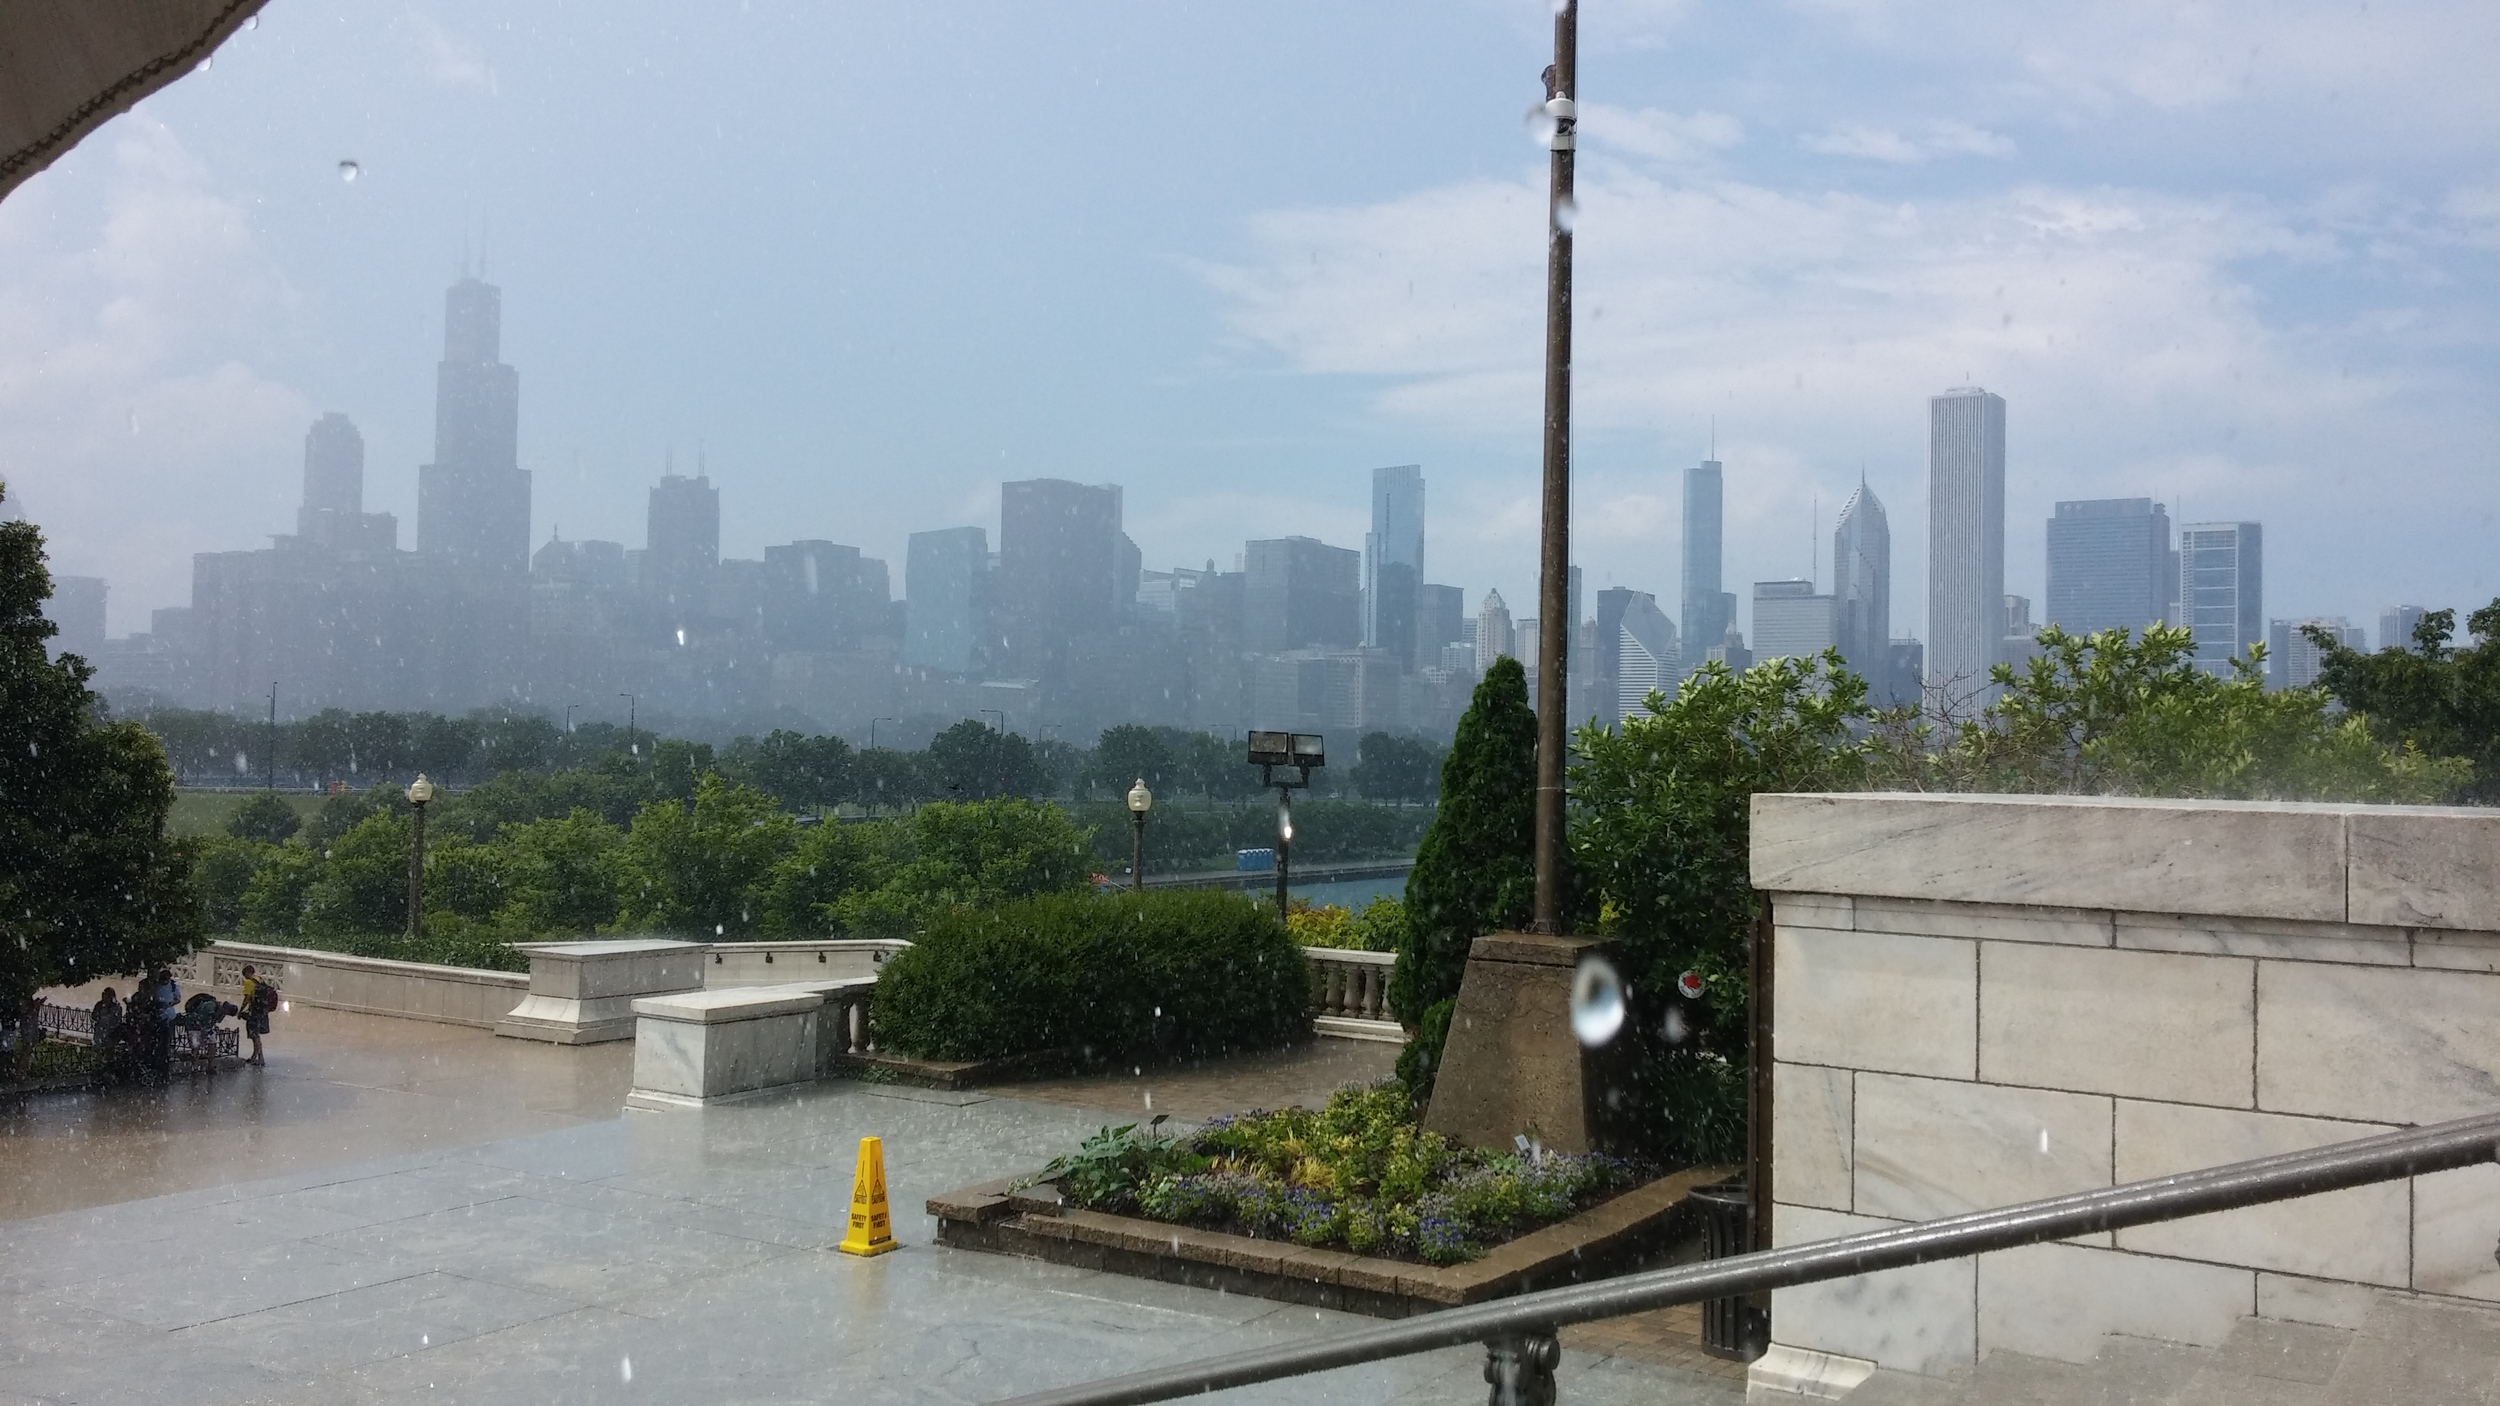 Chicago on a rainy day back in June